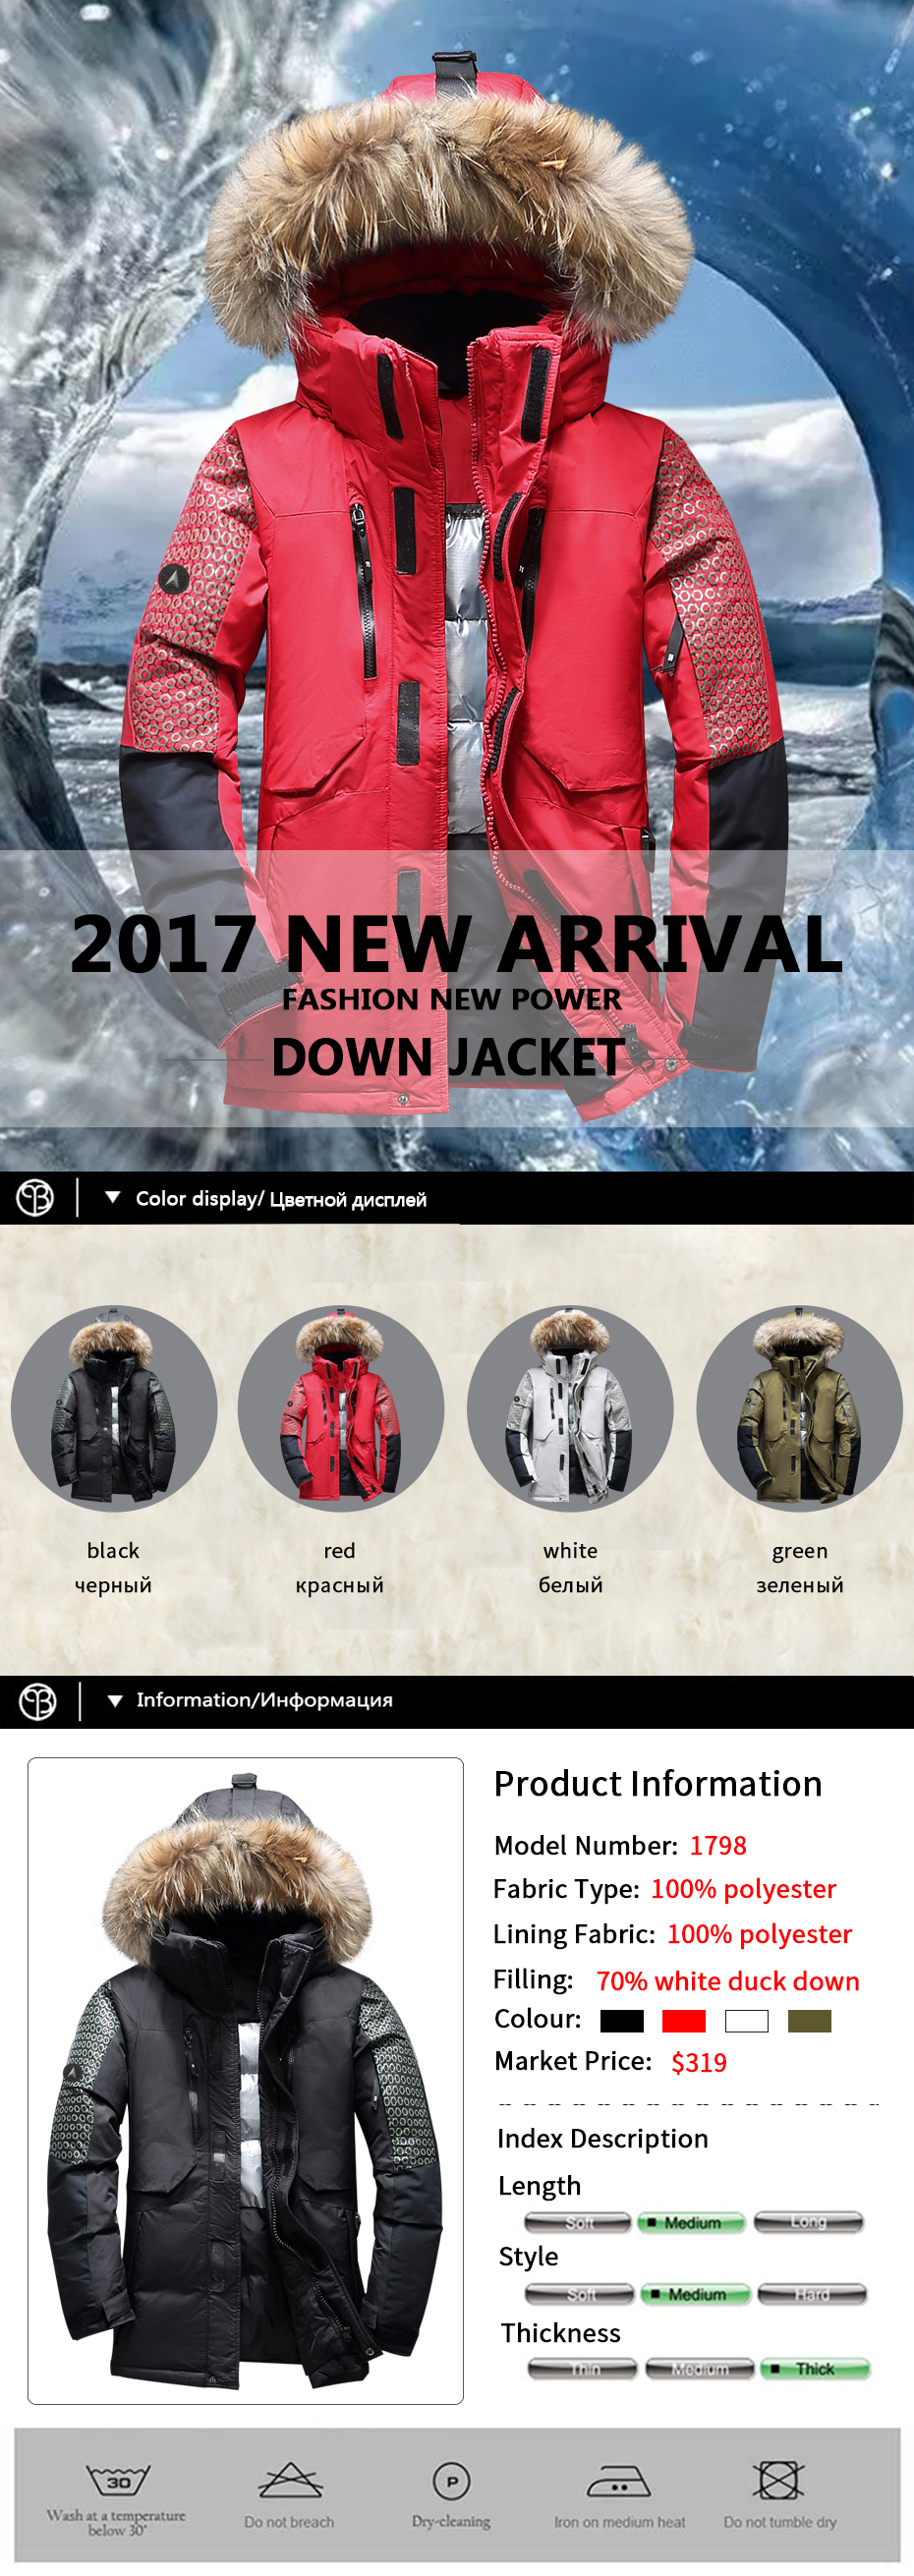 2019 2017 Men Winter Jacket Thick Warm White Duck Down Coat High Quality Brand Clothing Casual Wellensteyn Men'S Parka From Cactuse, $180.71 |